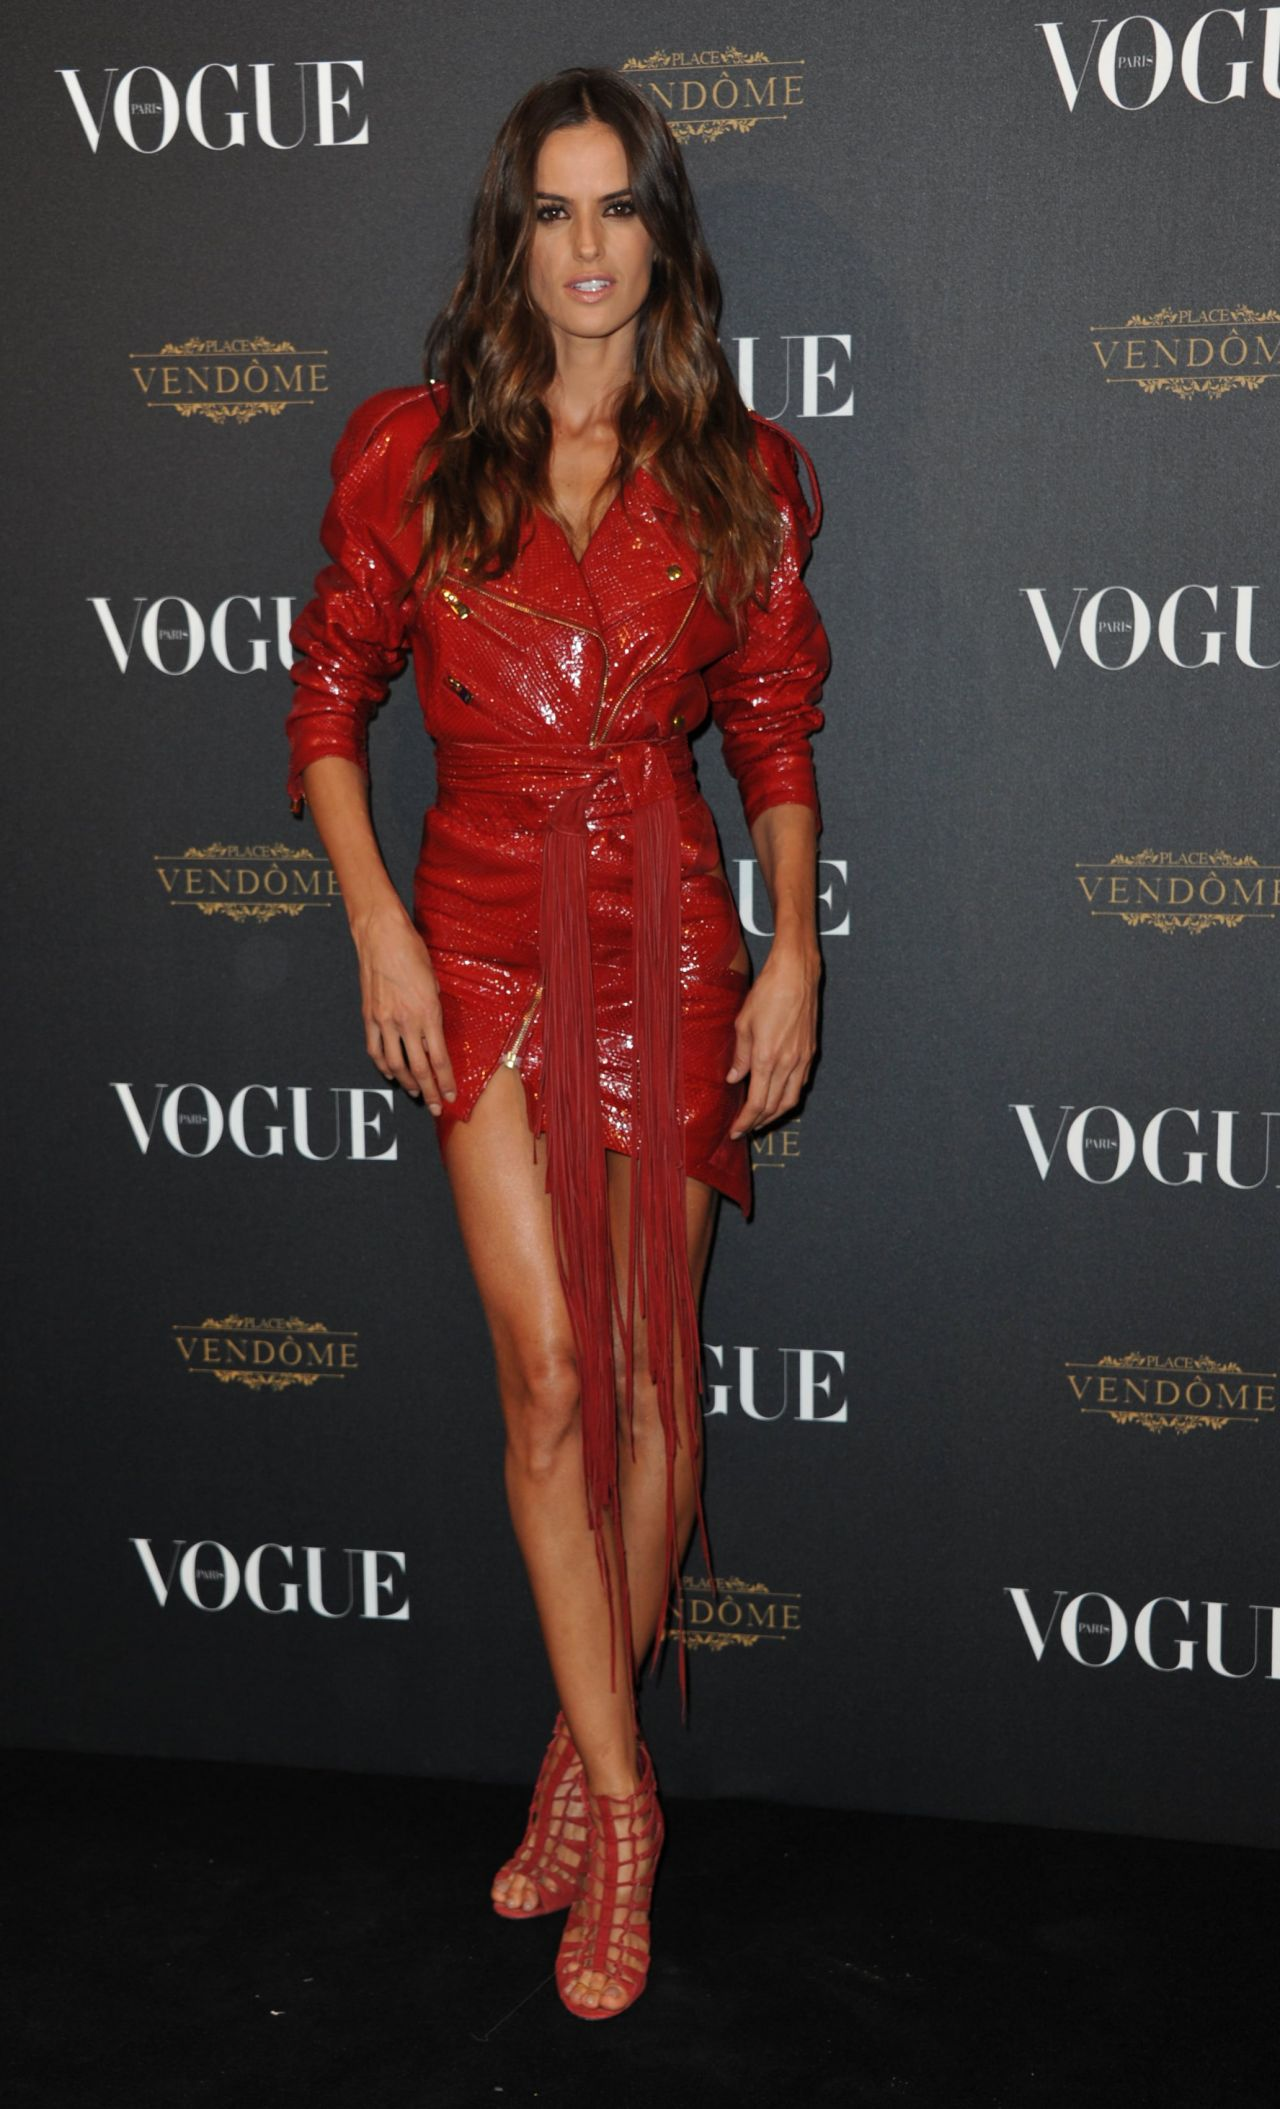 izabel-goulart-vogue-95th-anniversary-party-in-paris_1